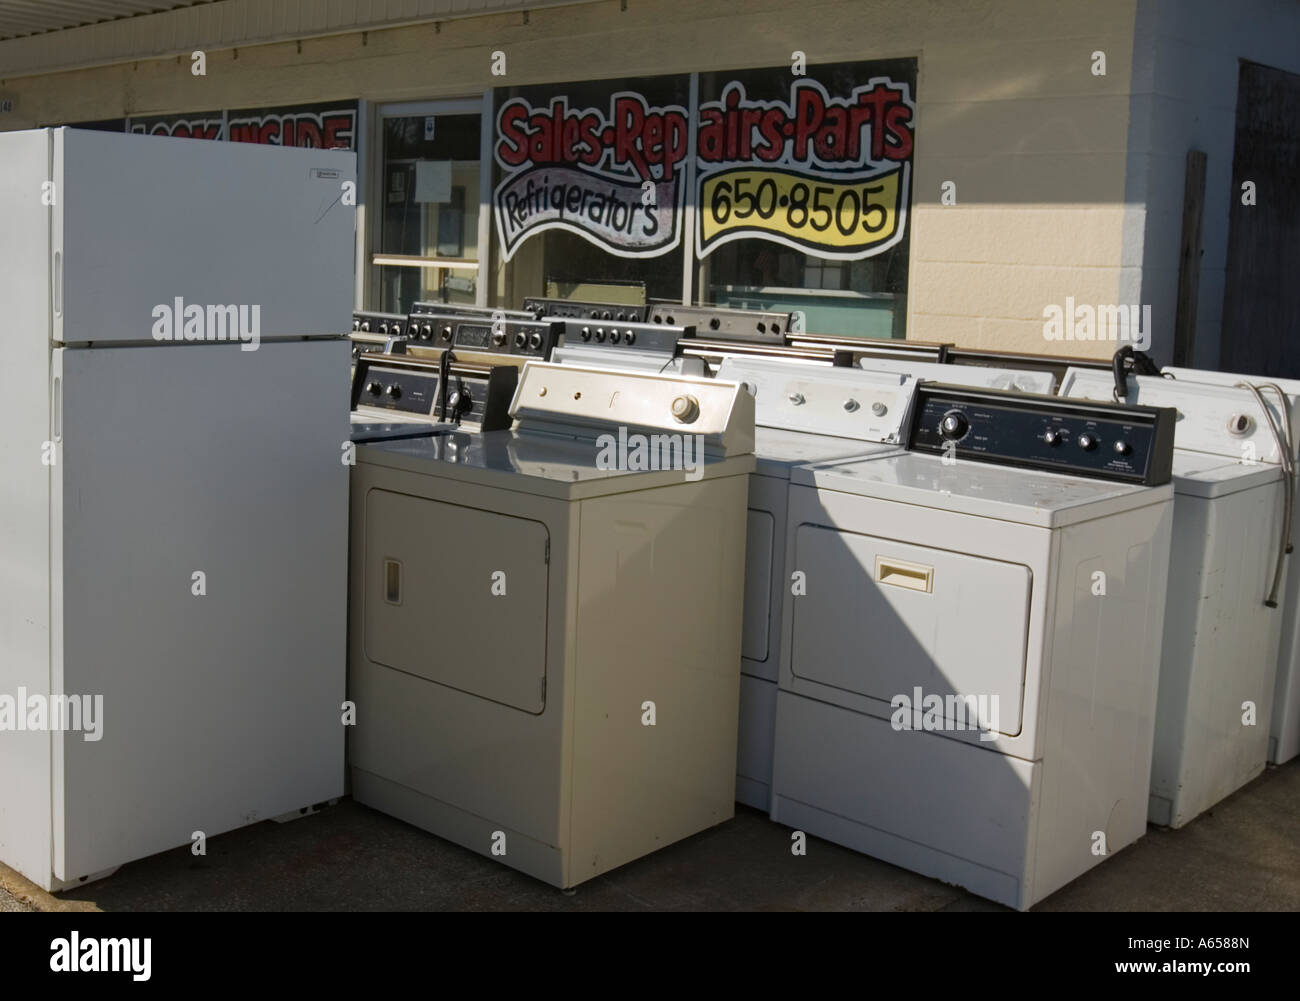 Used appliances for sale Stock Photo: 11464868 - Alamy